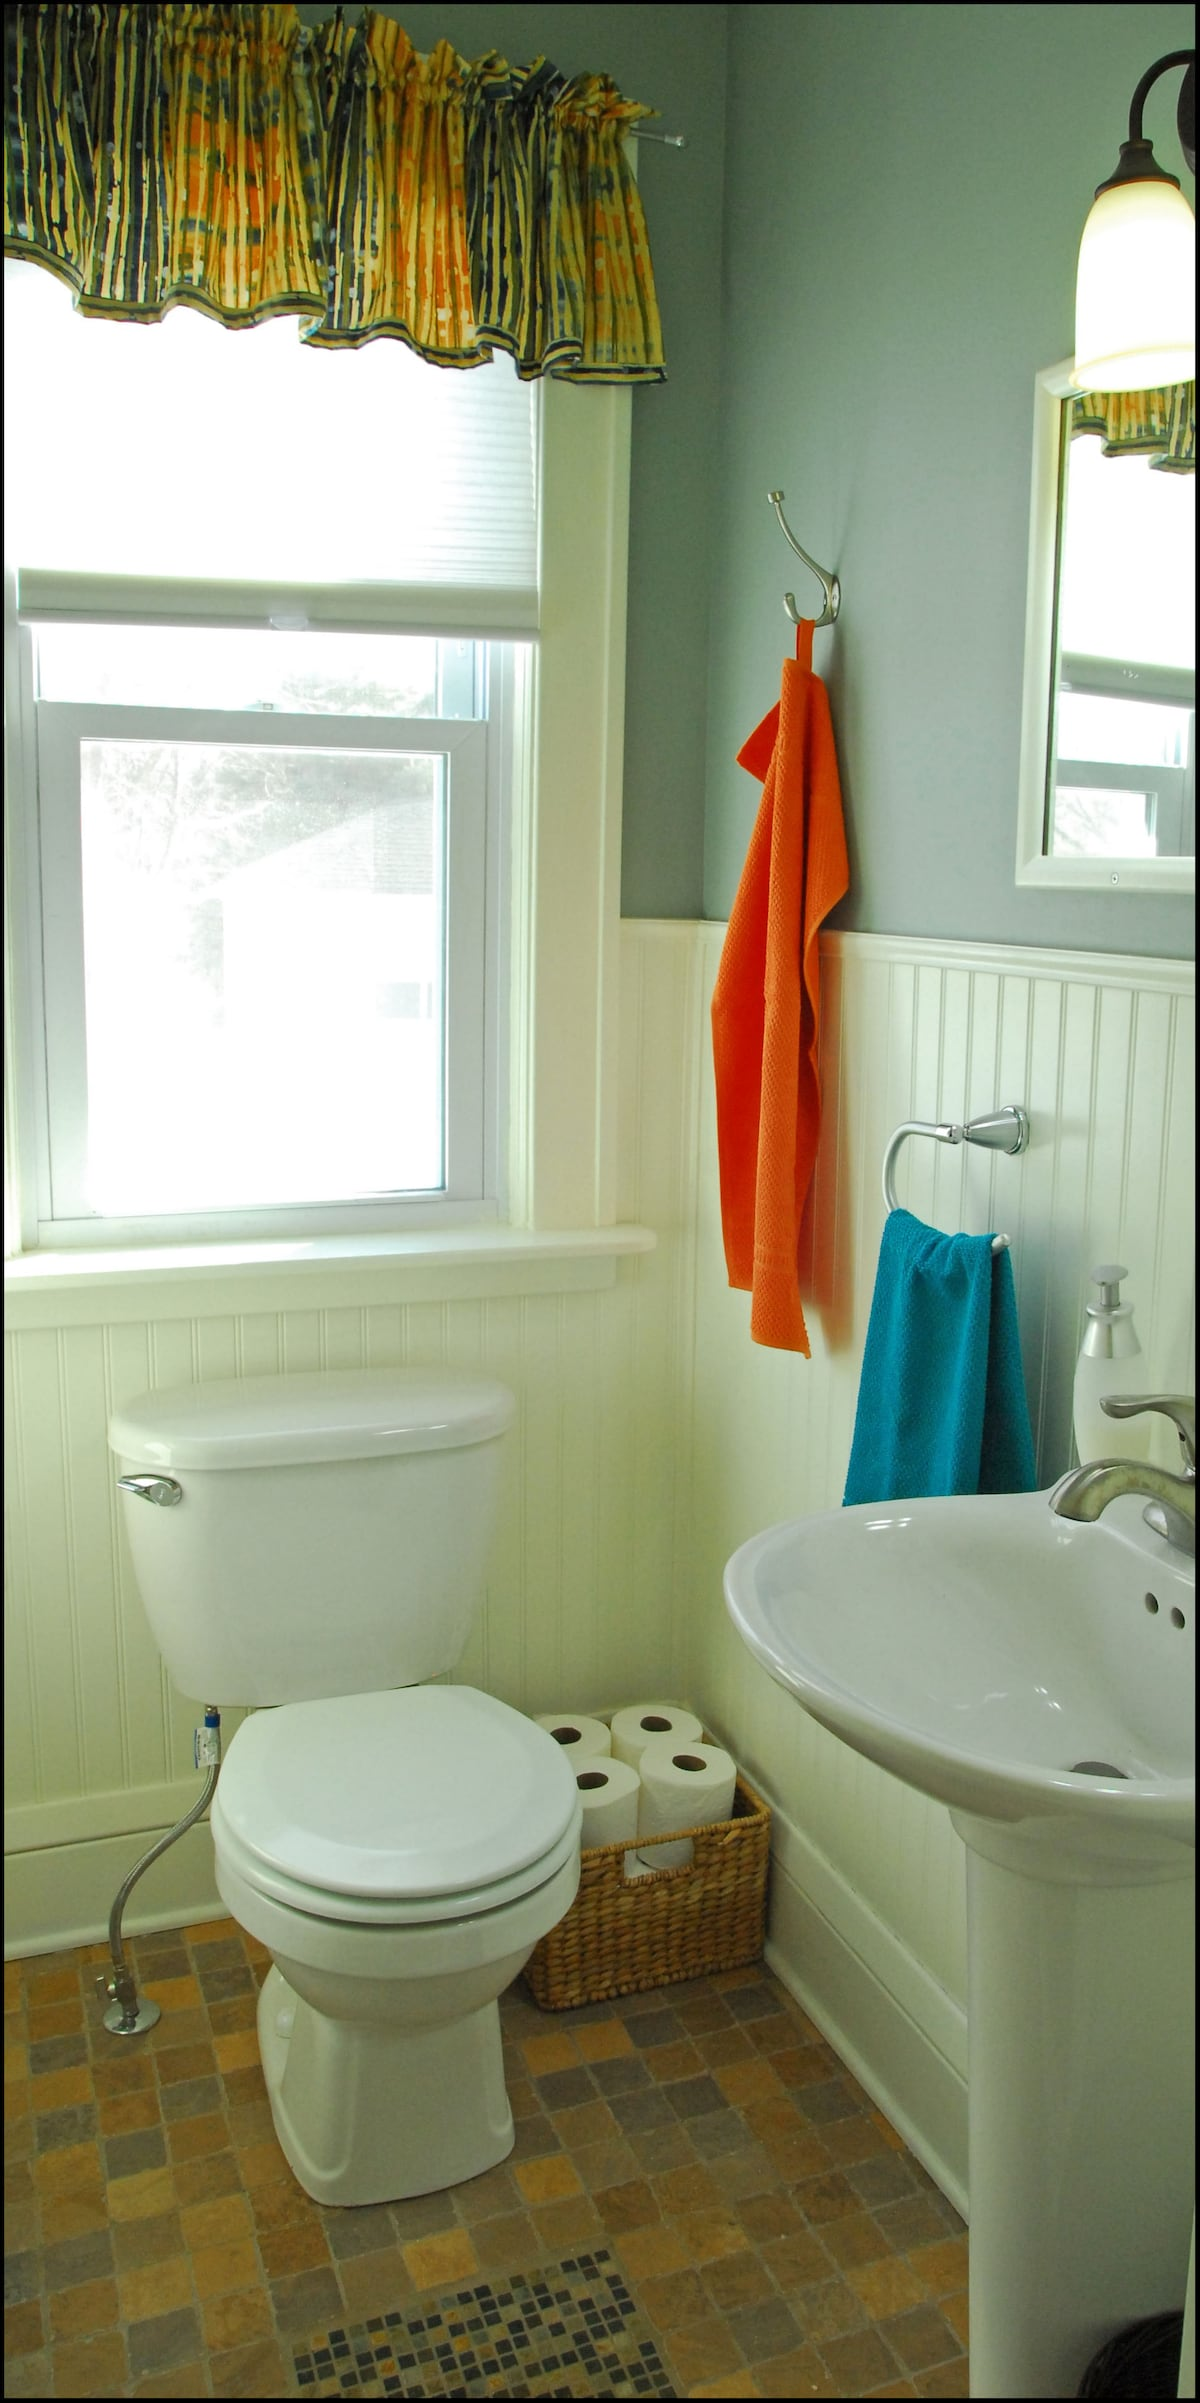 Adjacent to the kitchen and breakfast area is the 1/2 bath.